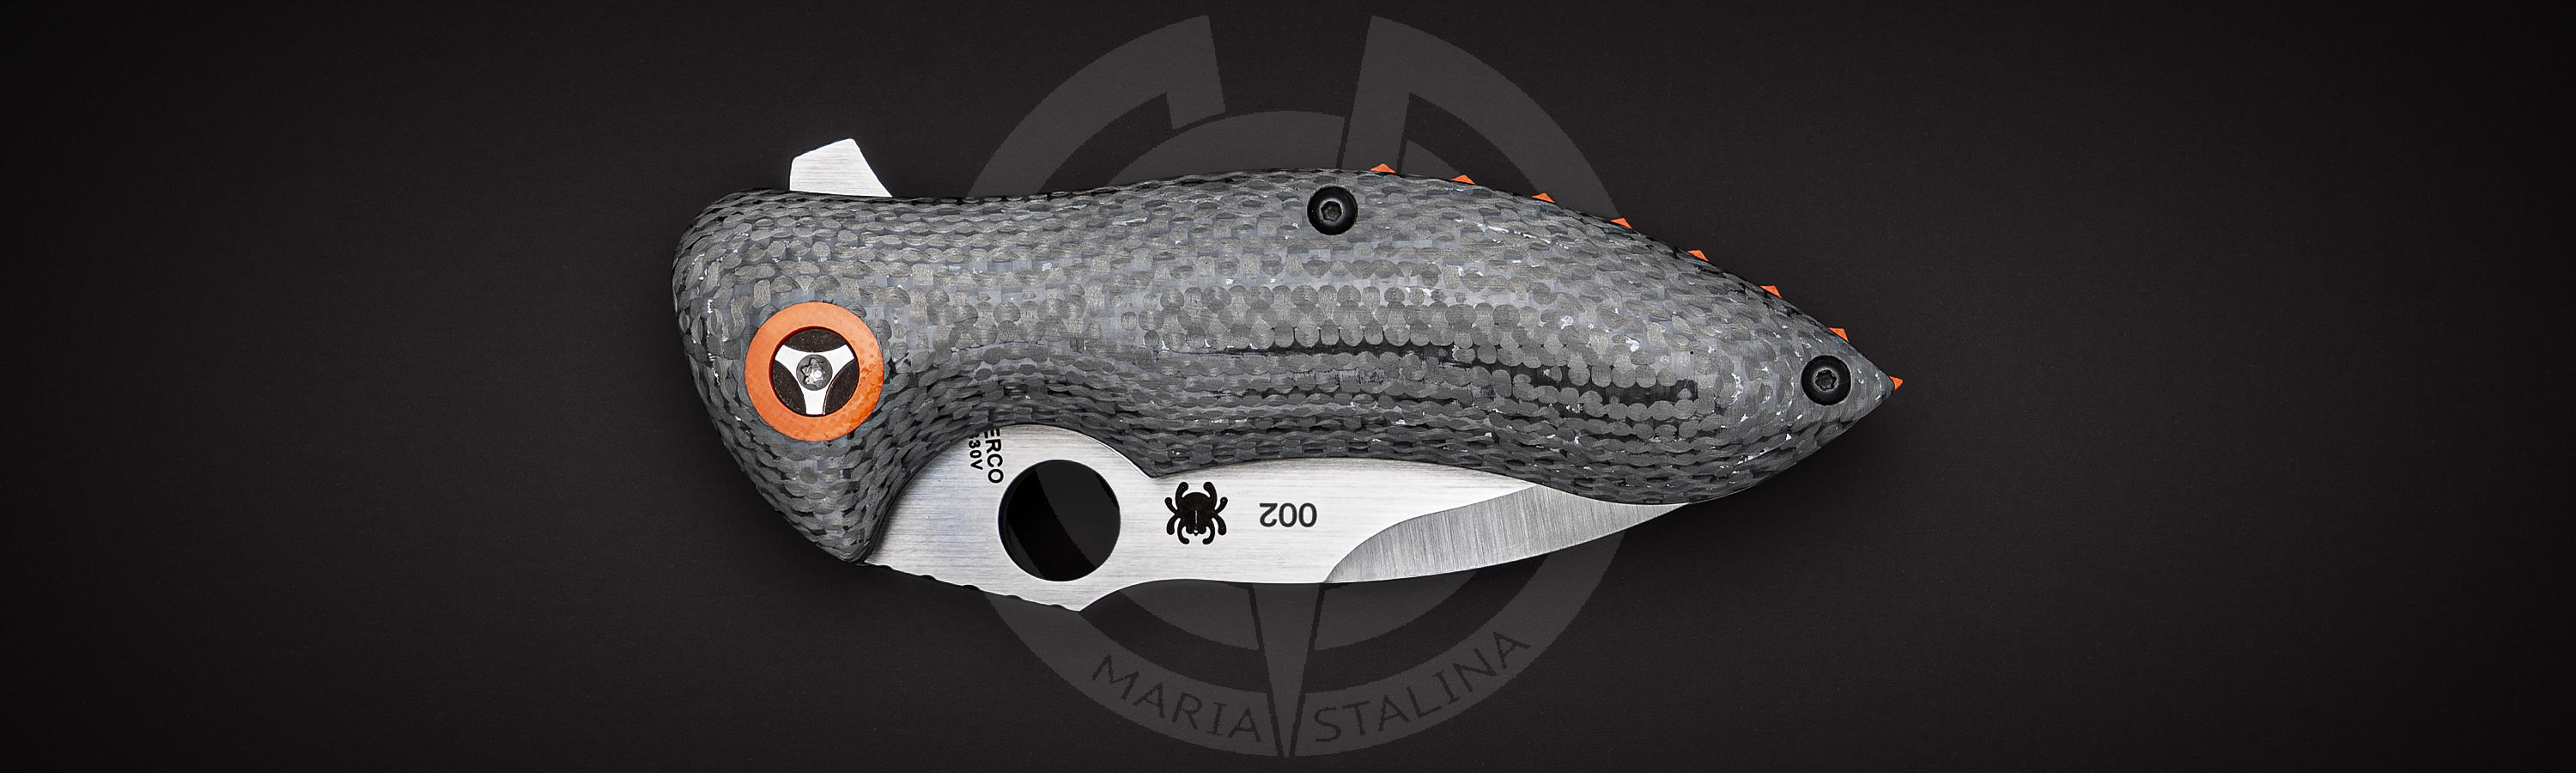 Carbon fiber handle of Rubicon Limited Edition